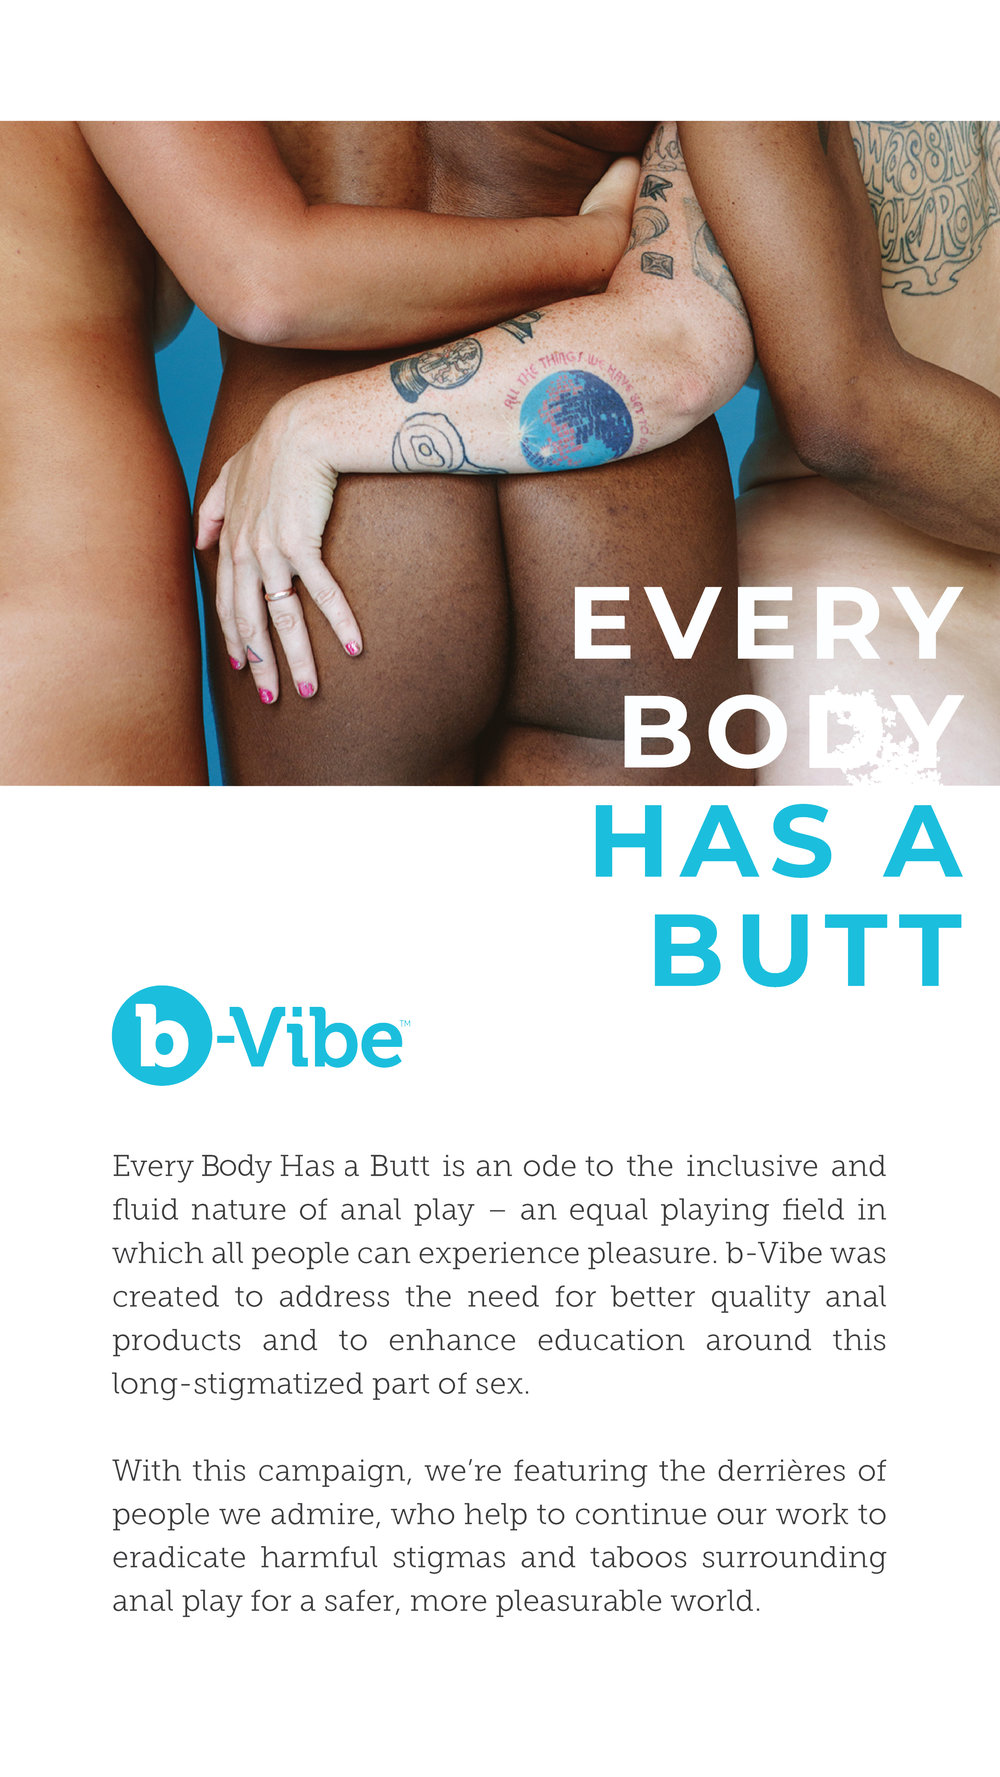 Bvibe butt campaign Instagram Grid_package-10 copy (1).jpg